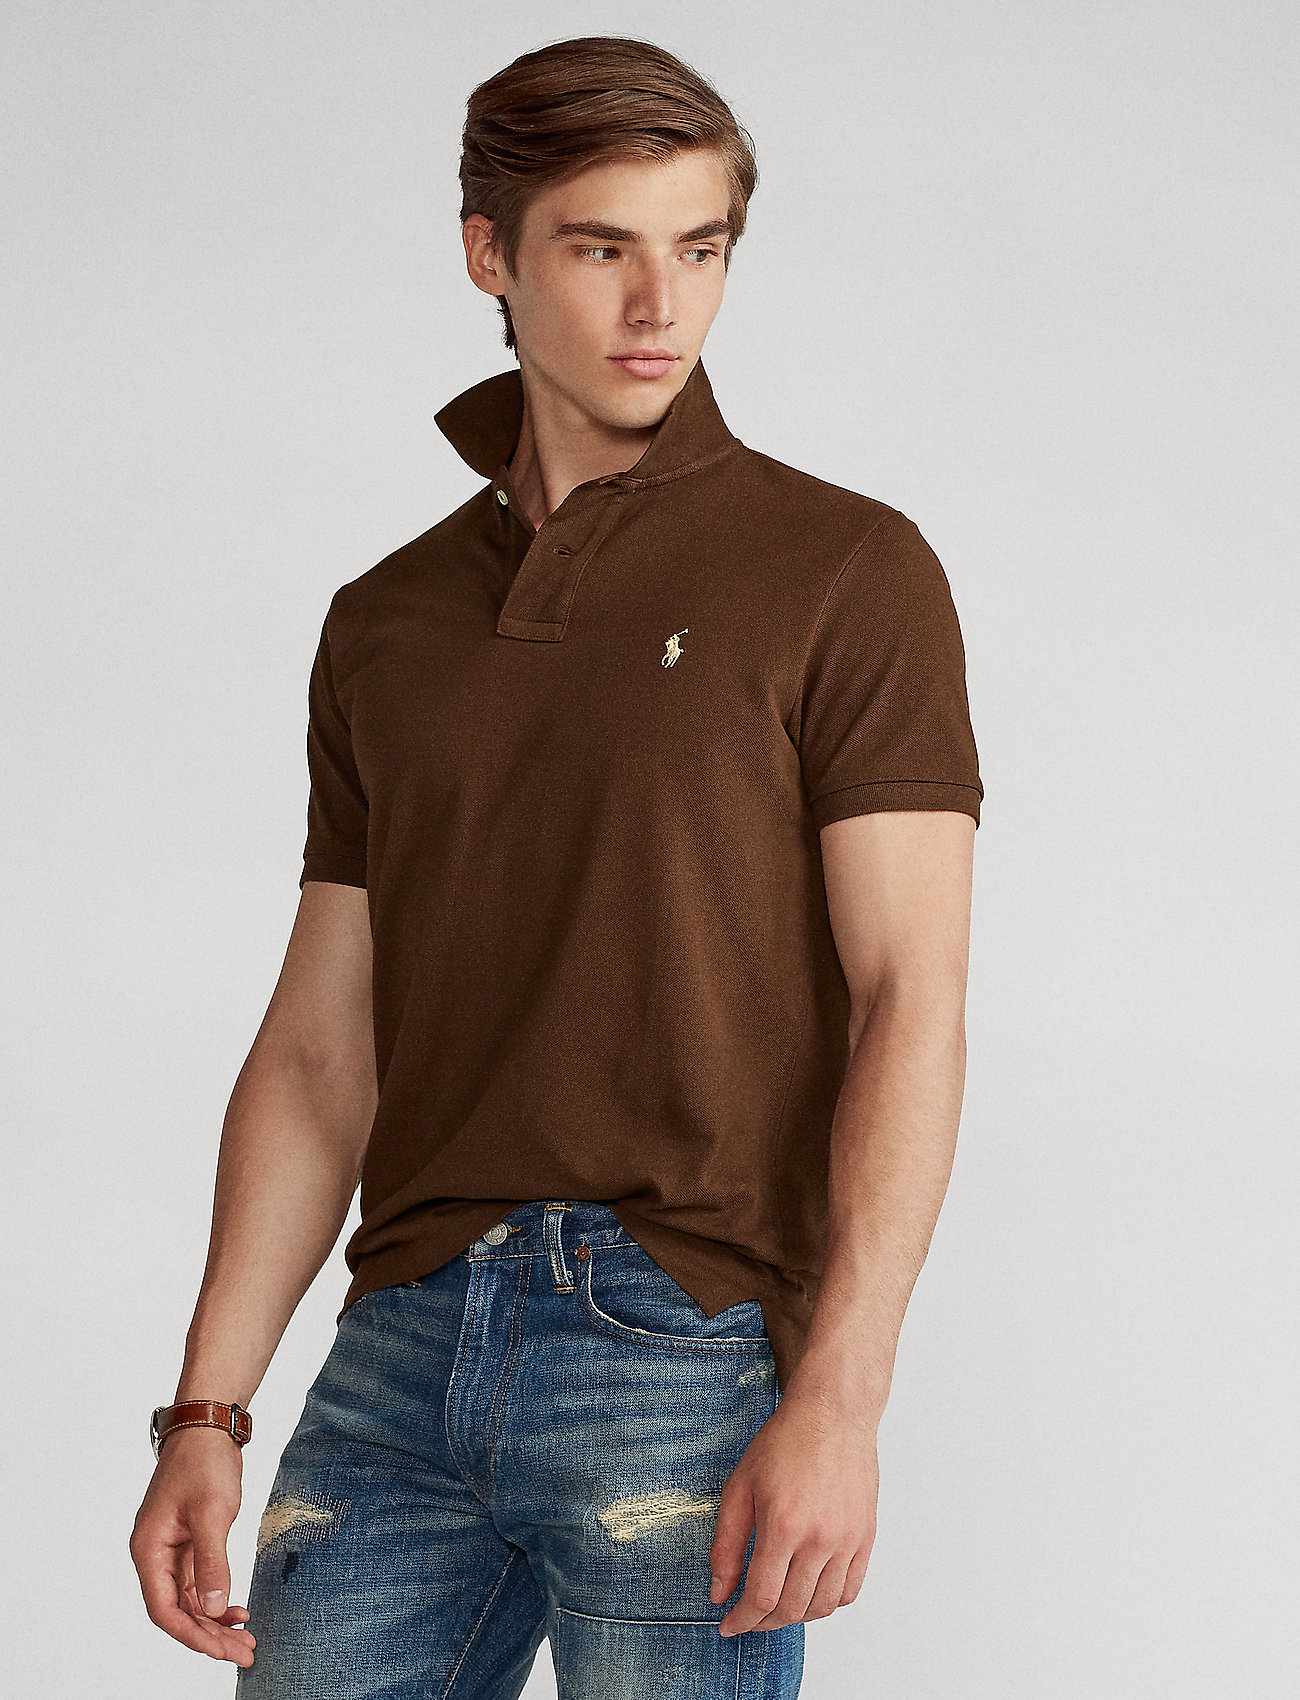 Polo Ralph Lauren Big & Tall - Classic Fit Mesh Polo Shirt - cooper brown/c831 - 0